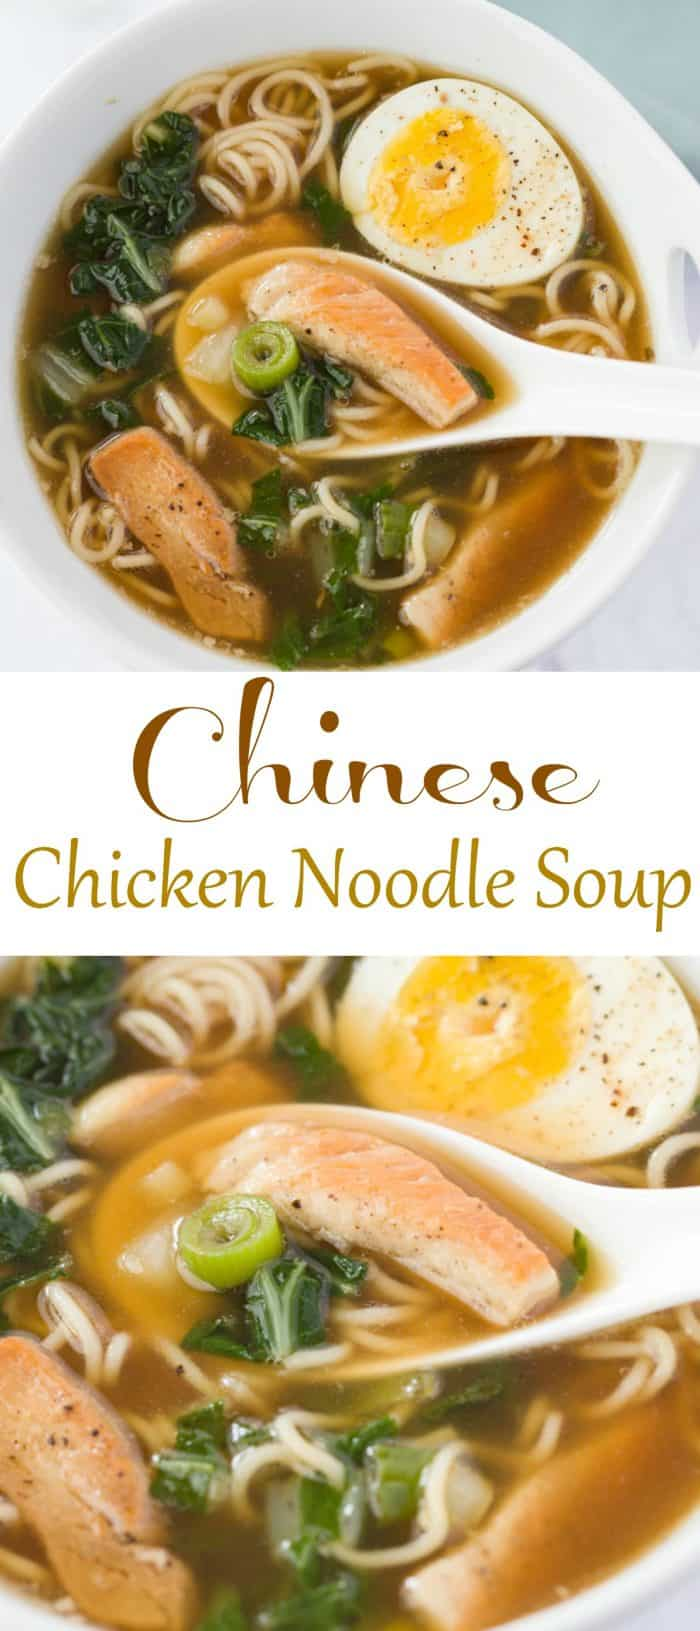 This healthy, protein packed Chinese Chicken Noodle Soup that will leave you satisfied and energized. | The Cozy Cook | #soup #asiancuisine #eggs #noodles #chickennoodlesoup #healthyfood #dinner #healthymeals